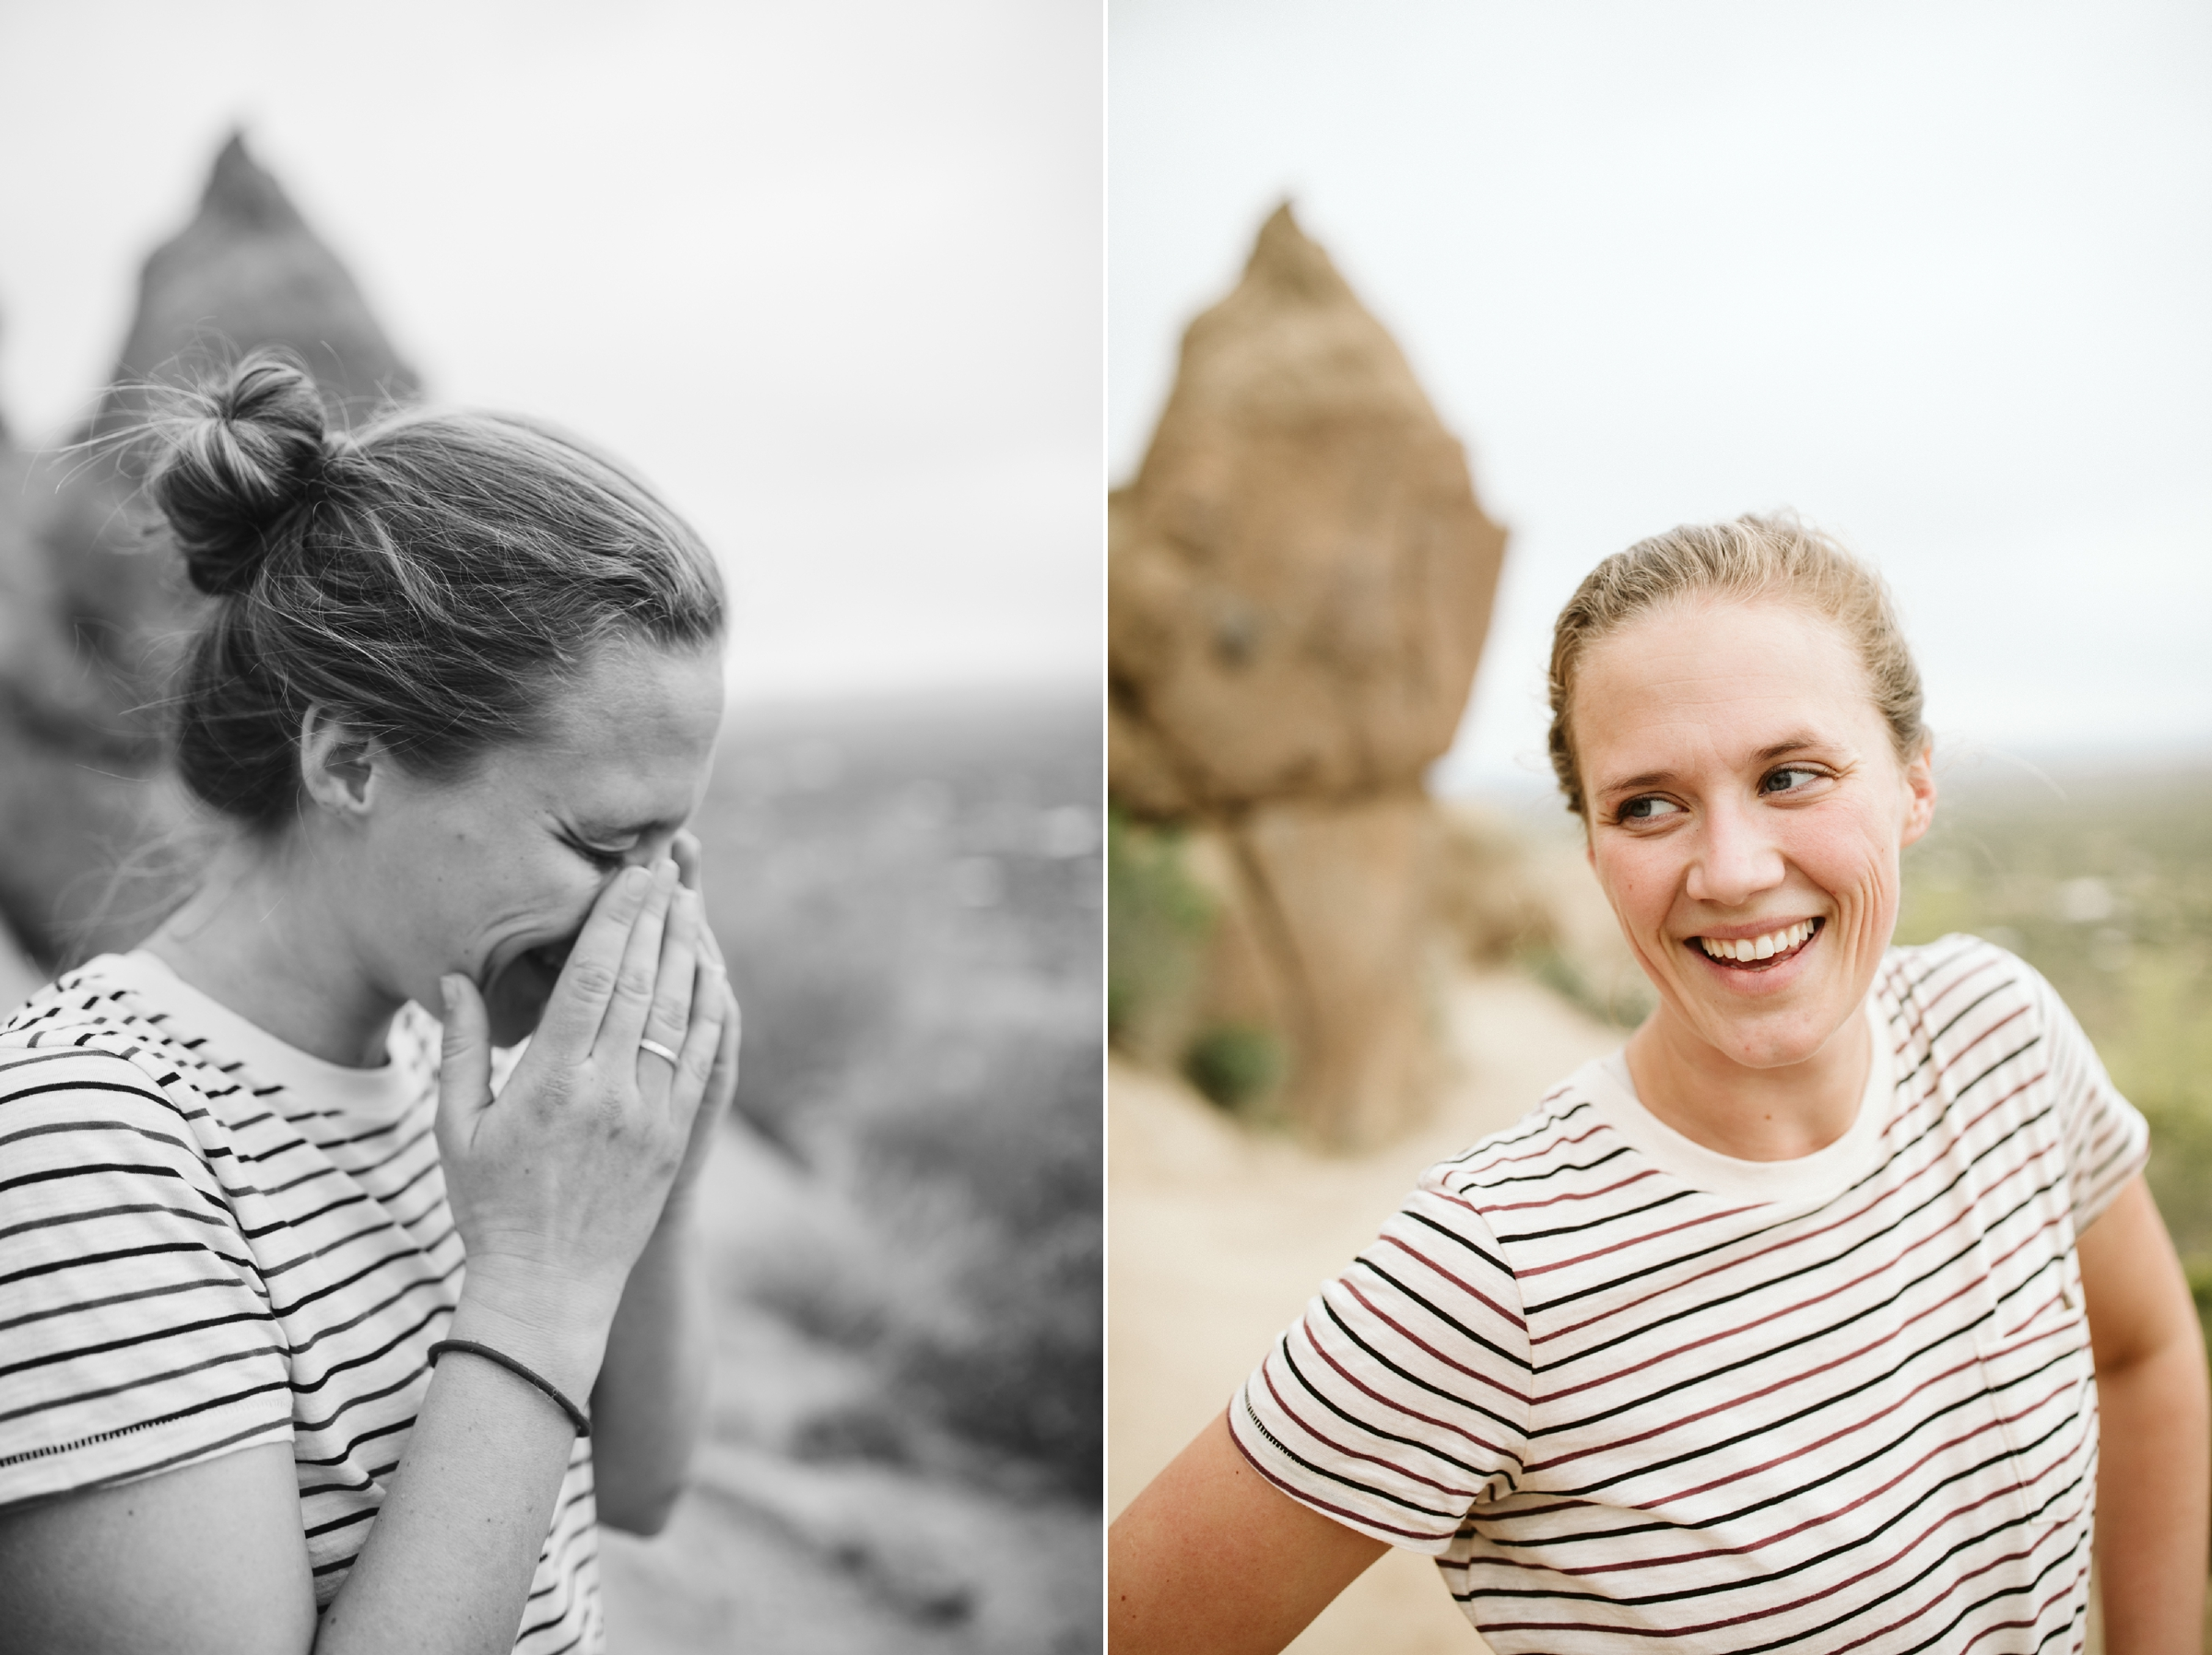 catie-bergman-arizona-southwest-hipster-seattlefamily-seattle-family-pnw-first-birthday-lifestylephotography-catie-bergman-photography-elopement-landscape-travel-wedding-pnw-portrait-lifestylephotography-vsco-northwest-friends-love_0004.jpg